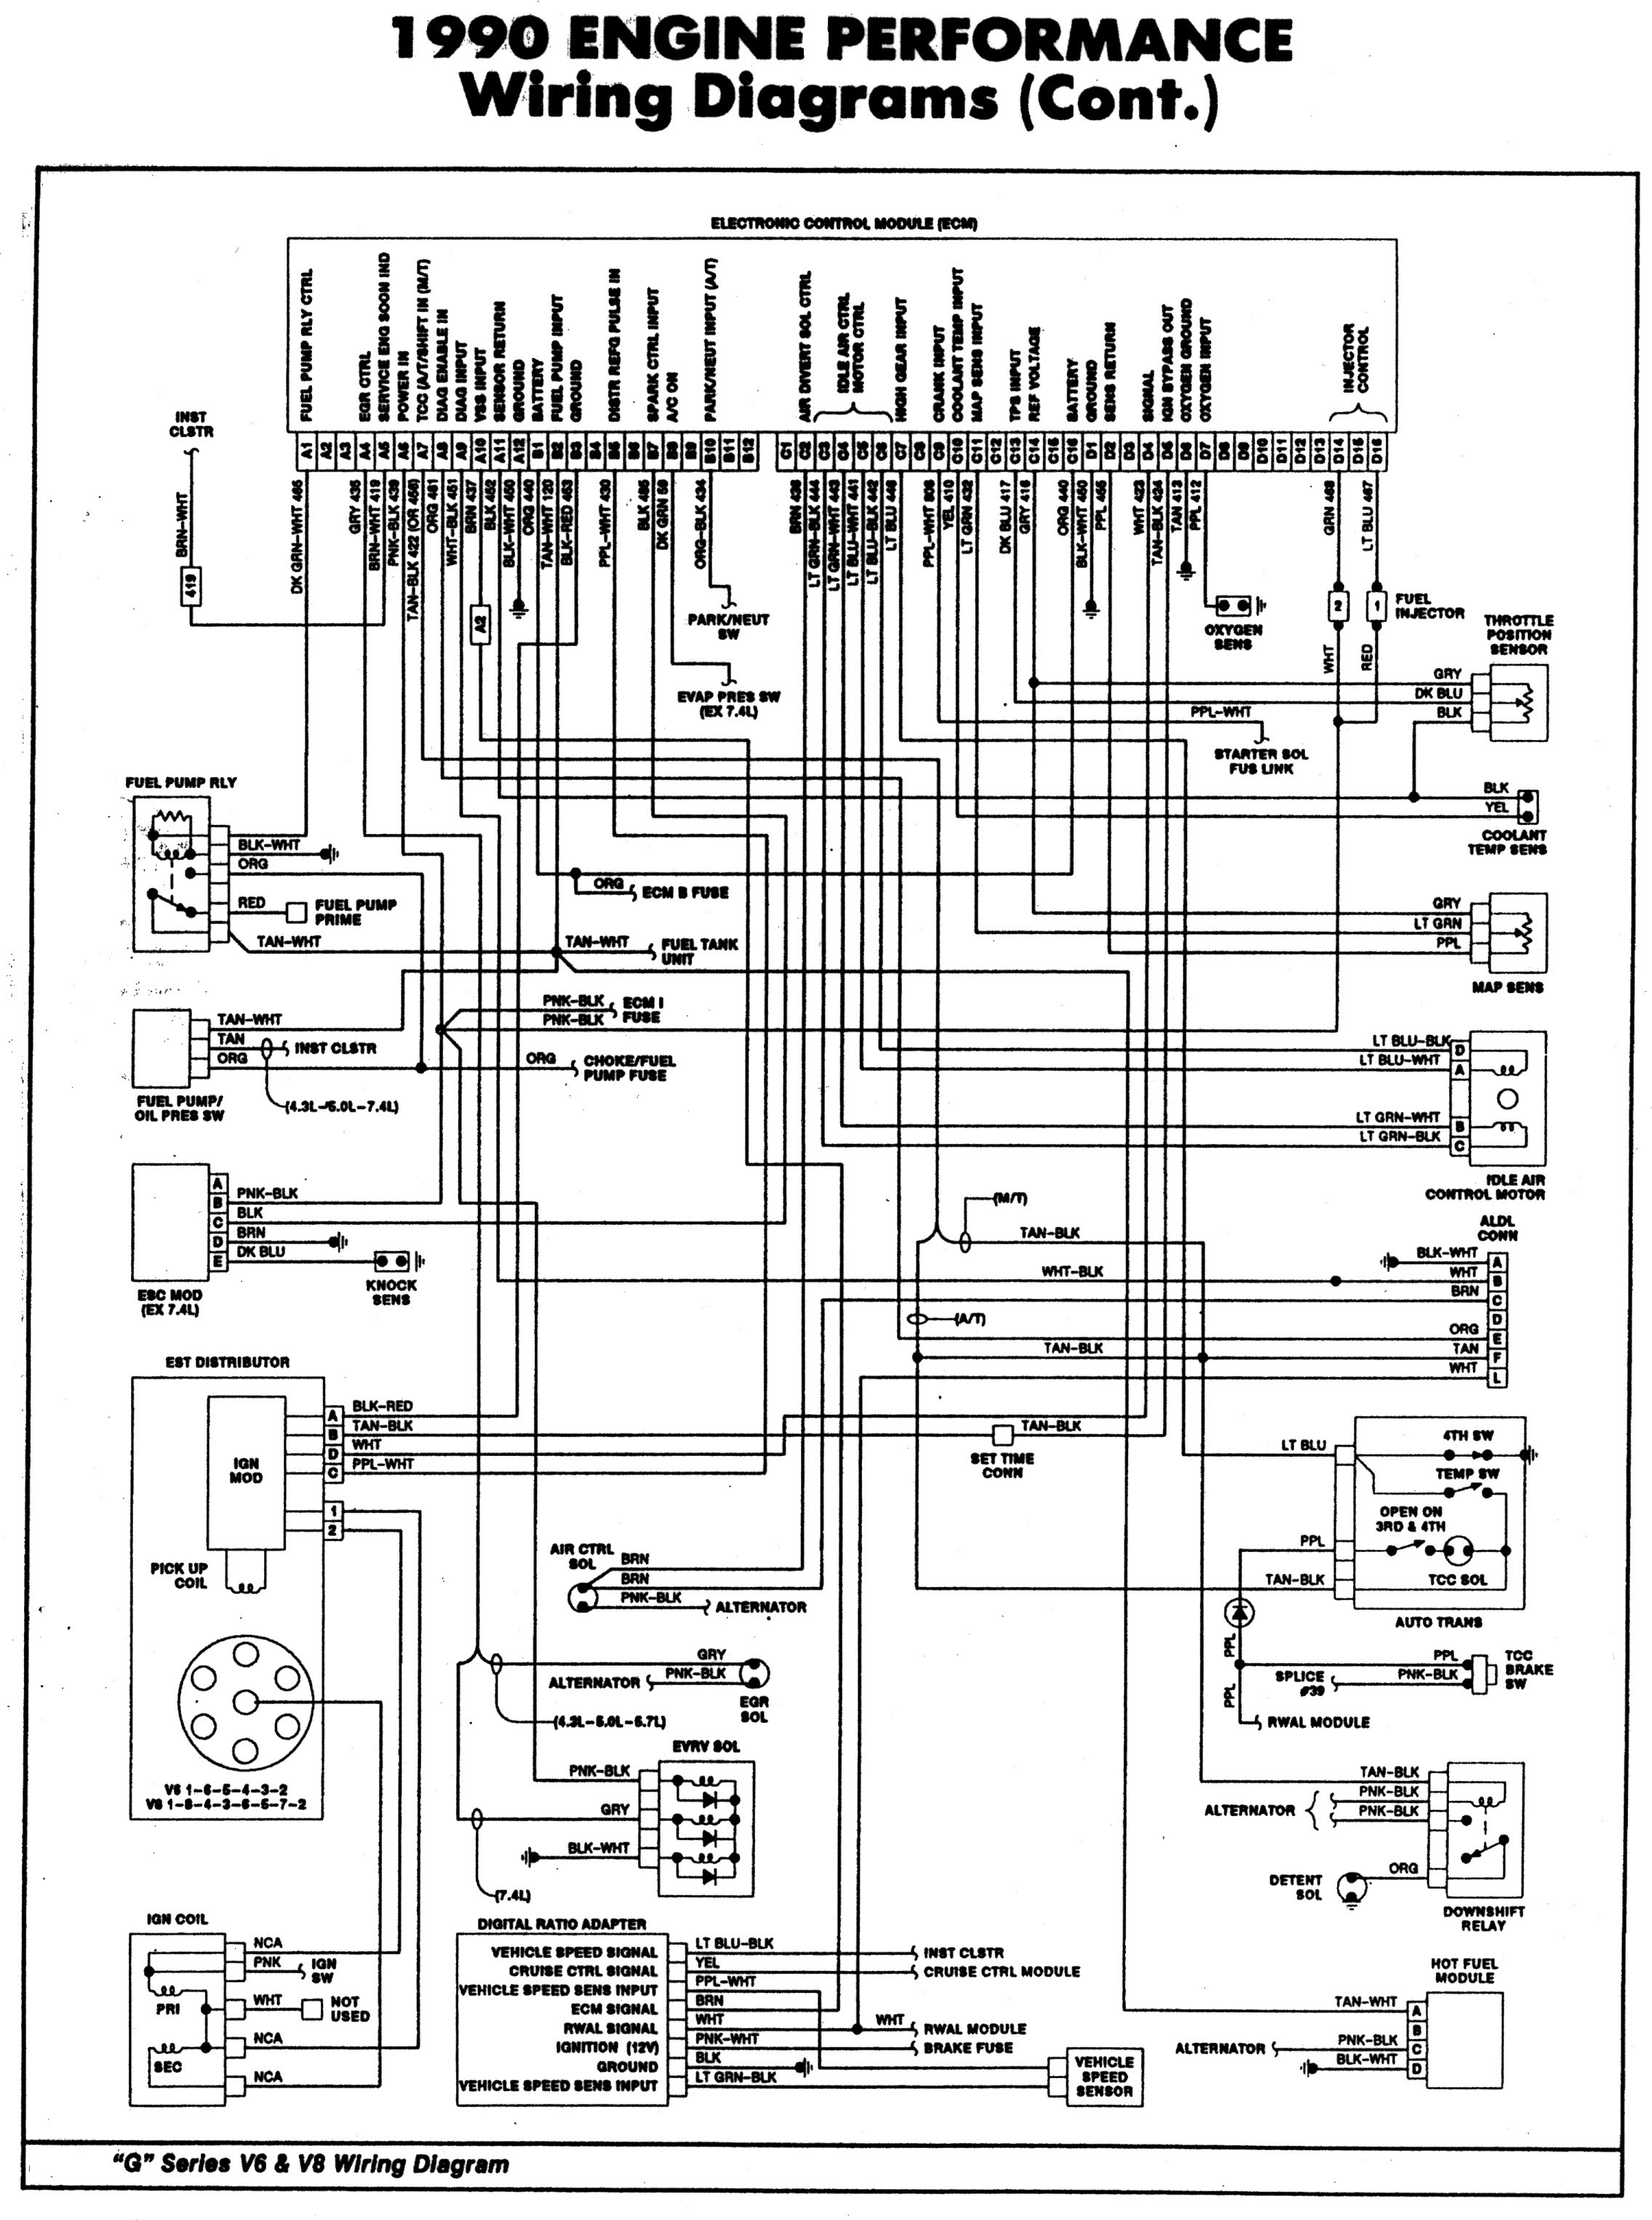 1995 chevy s10 engine diagram information schematics wiring diagrams 1998 S10 Wiring Diagram